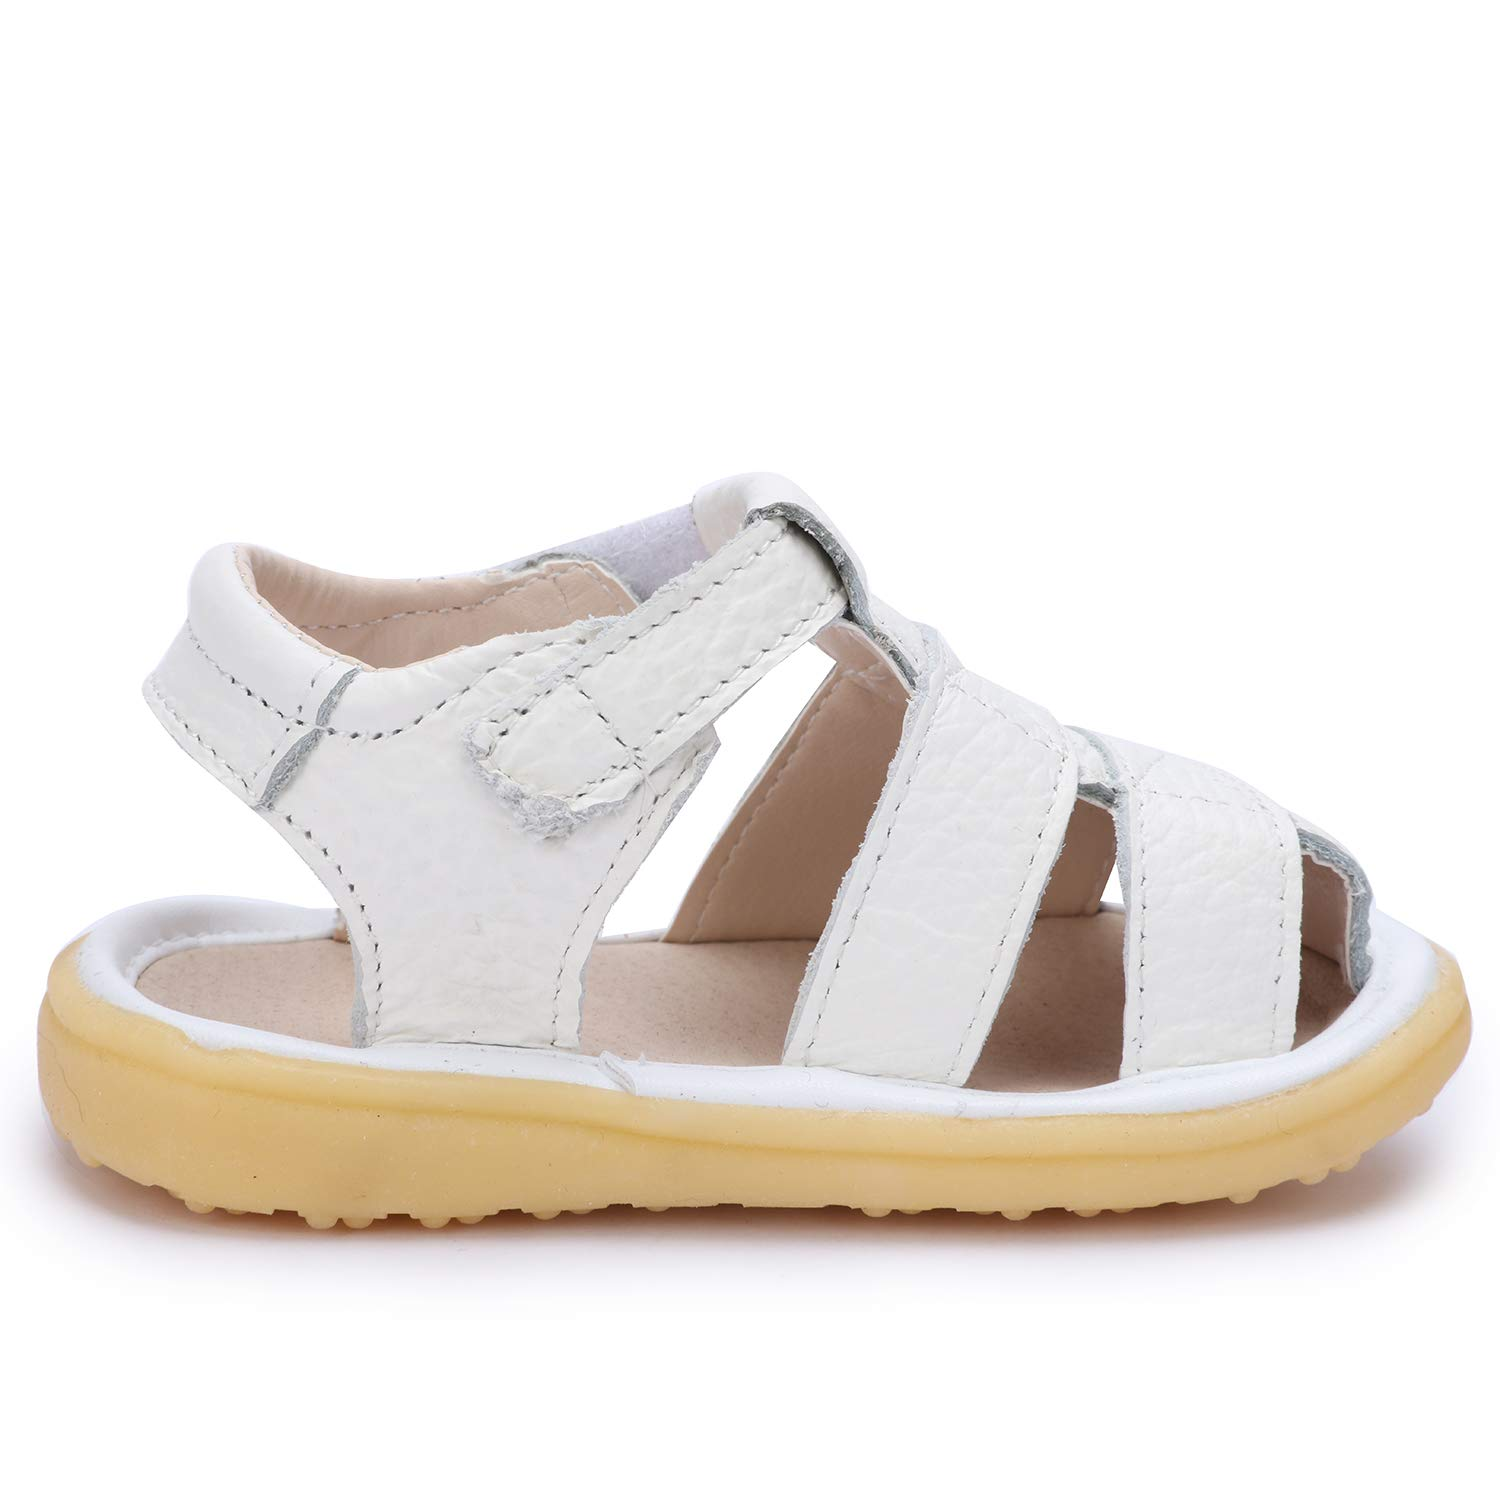 UBELLA Toddler Boys Girls Summer Outdoor Closed-Toe Leather Sandals Casual Flat Soft Sole Prewalker Shoes